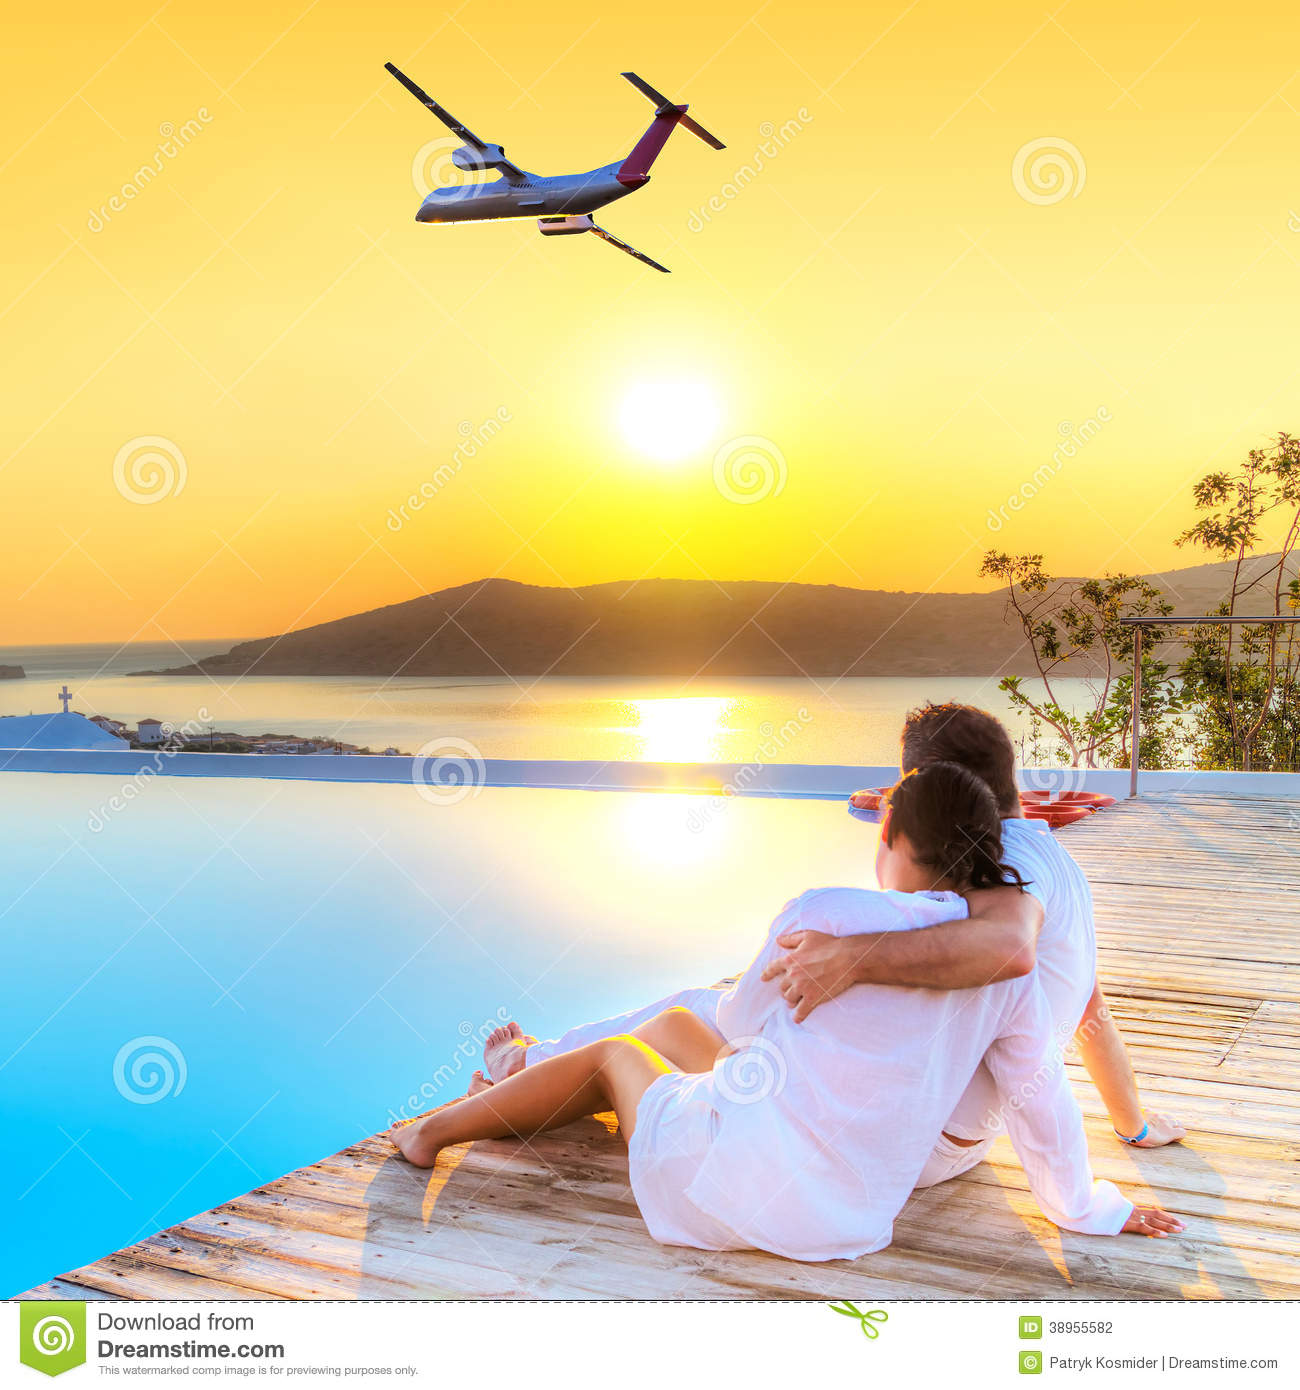 Couple In Hug Watching Airplane At Sunset Stock Photo